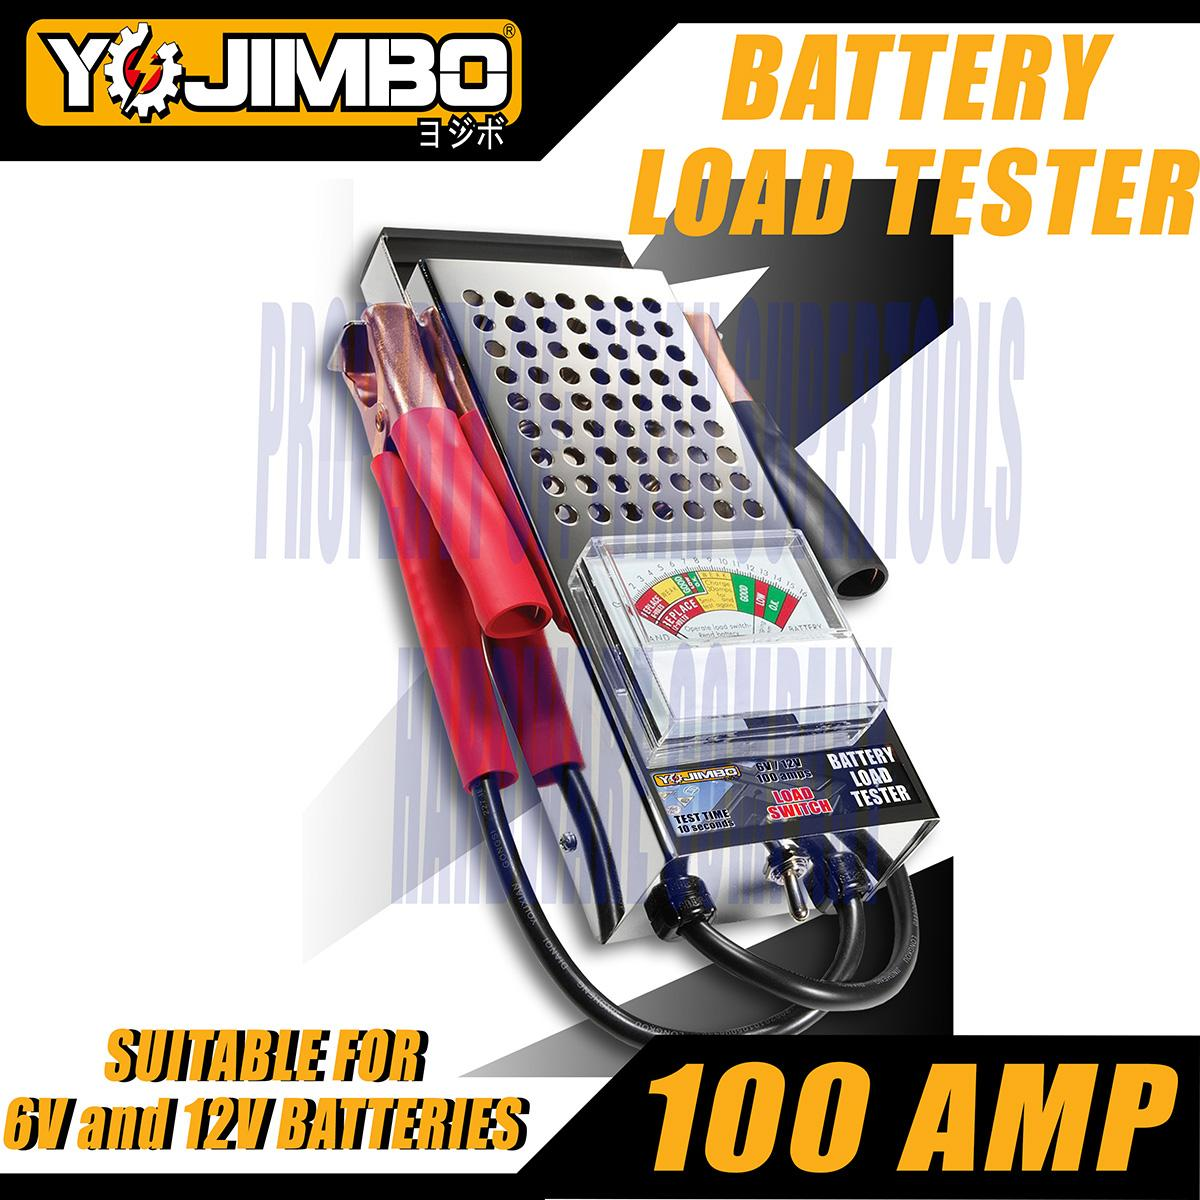 Car Battery Tester For Sale Load Online Brands Auto Light Alligator Clip Dc 624v 12v Test Circuit Voltage Yojimbo Yj Blt100a 6v 100 Amp